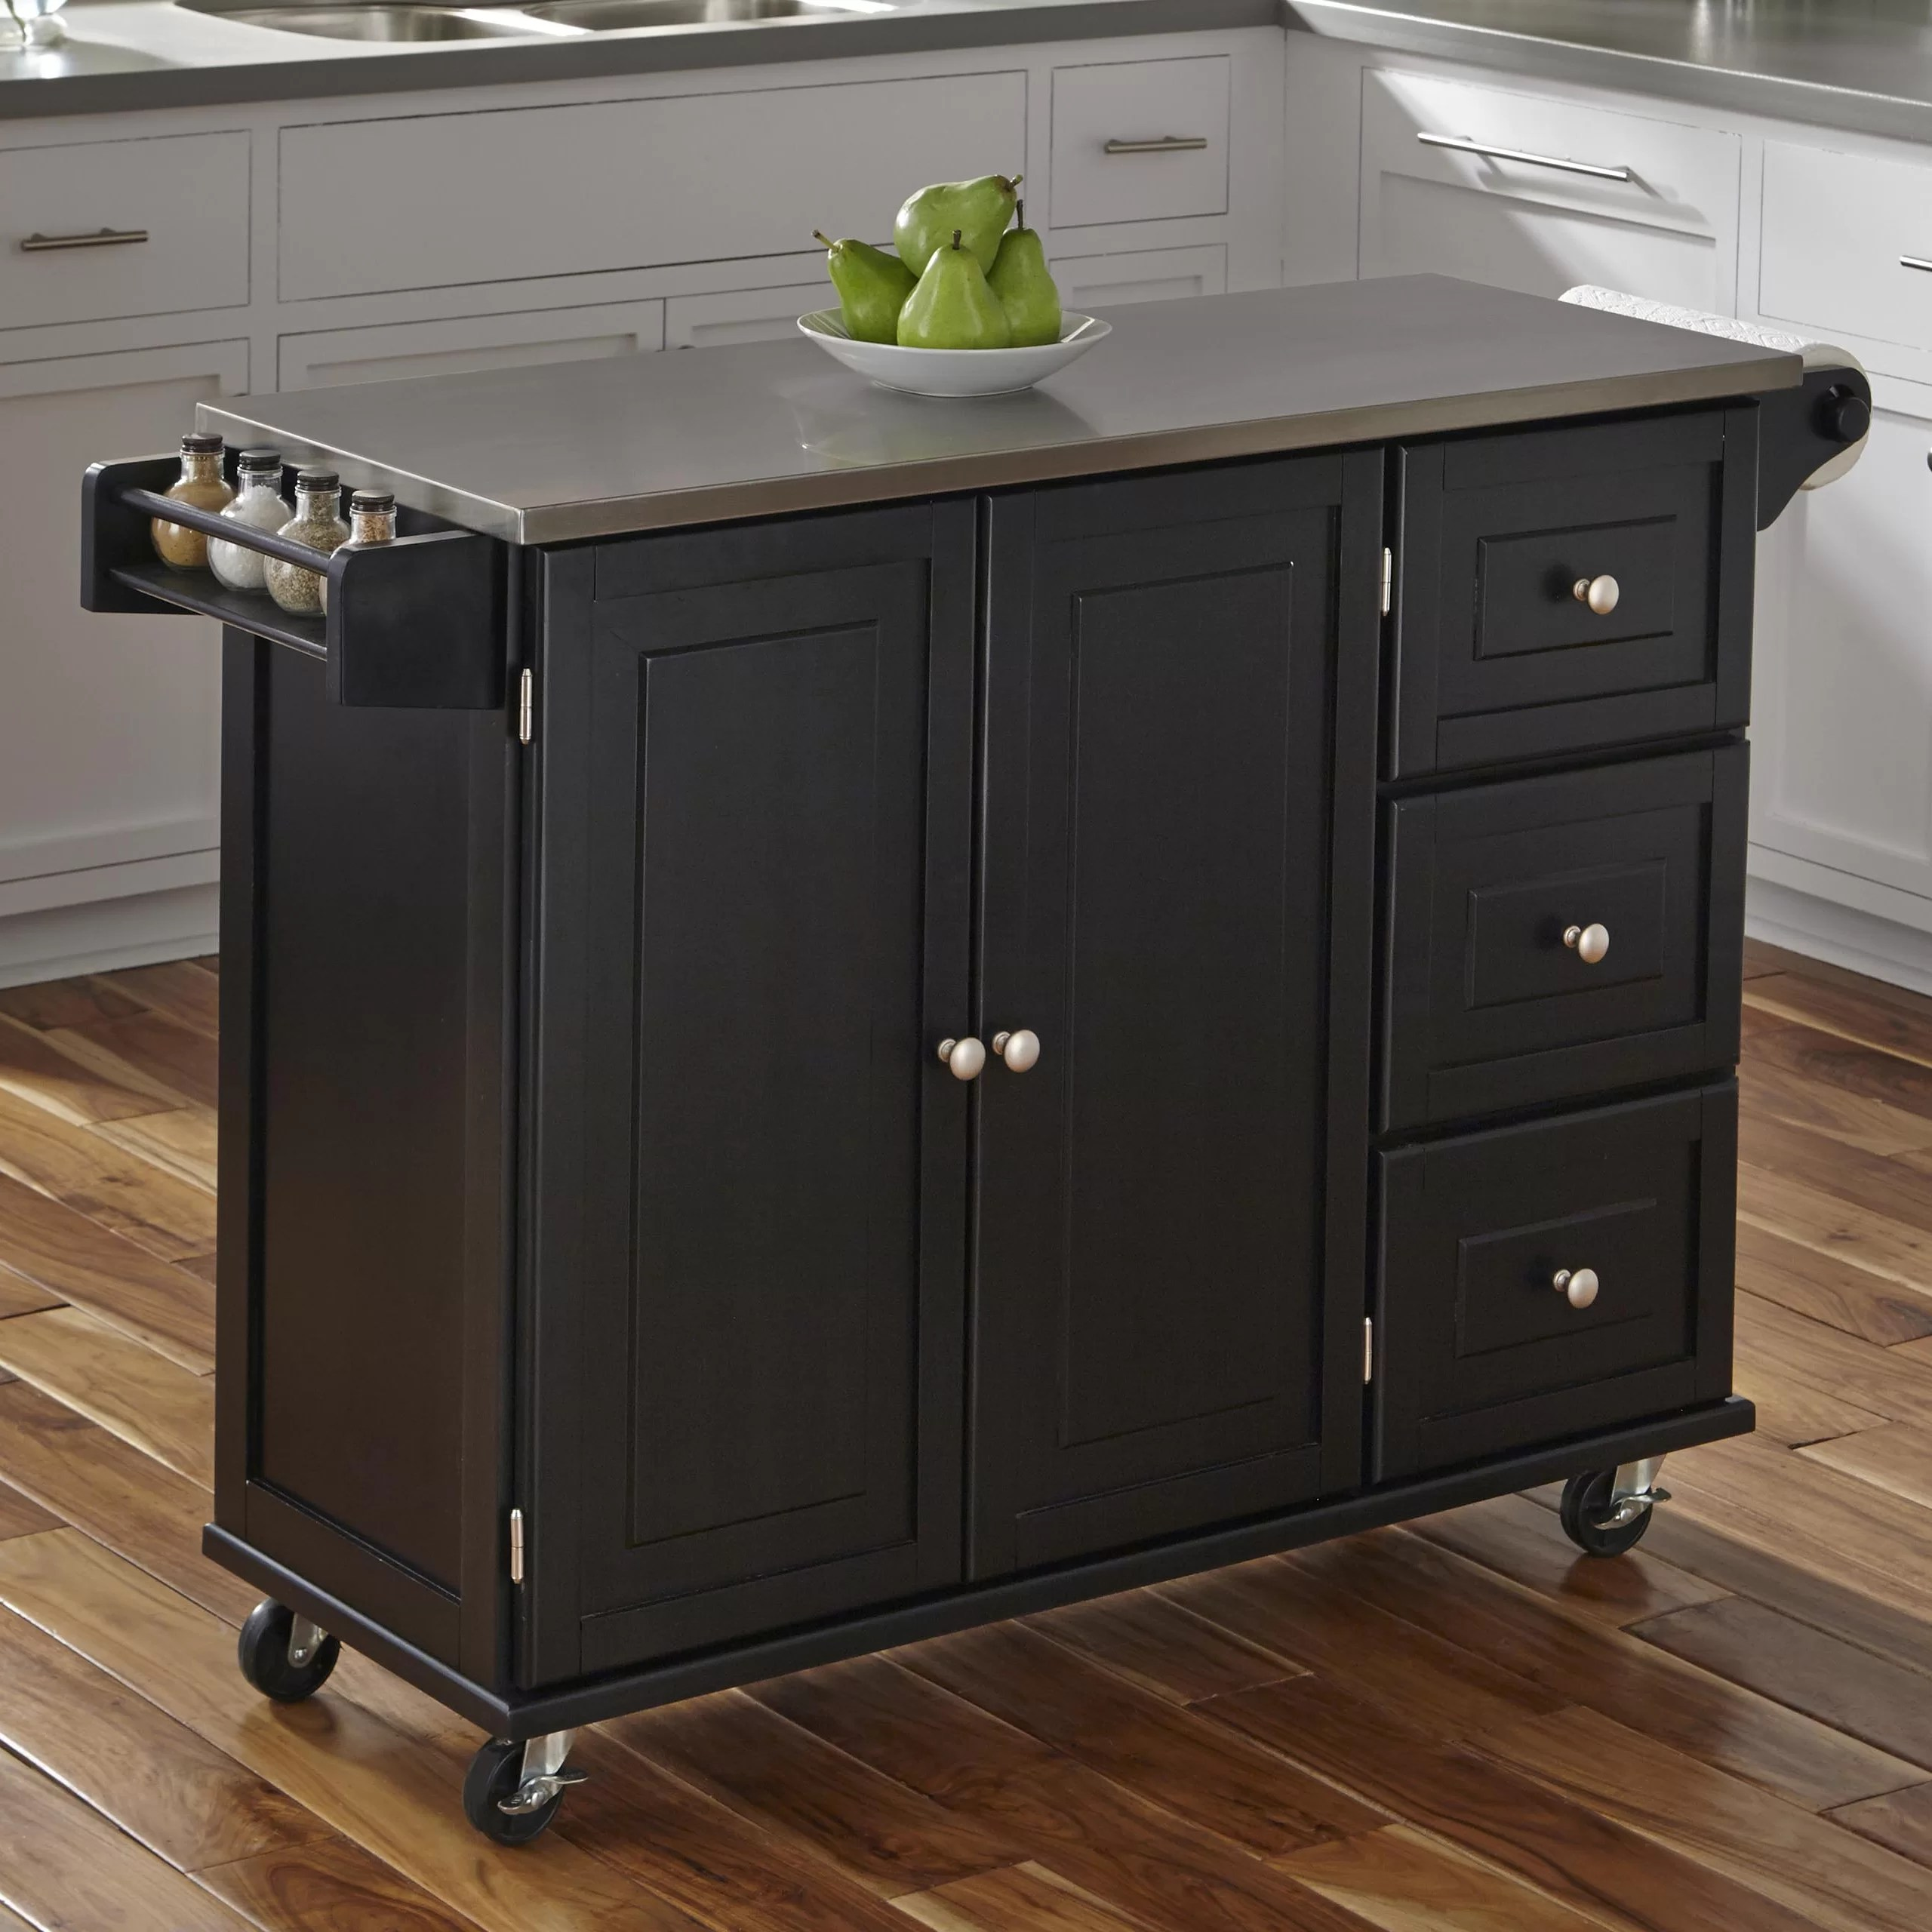 home styles liberty kitchen island stainless steel top reviews furniture cambridge stainless steel top kitchen island white